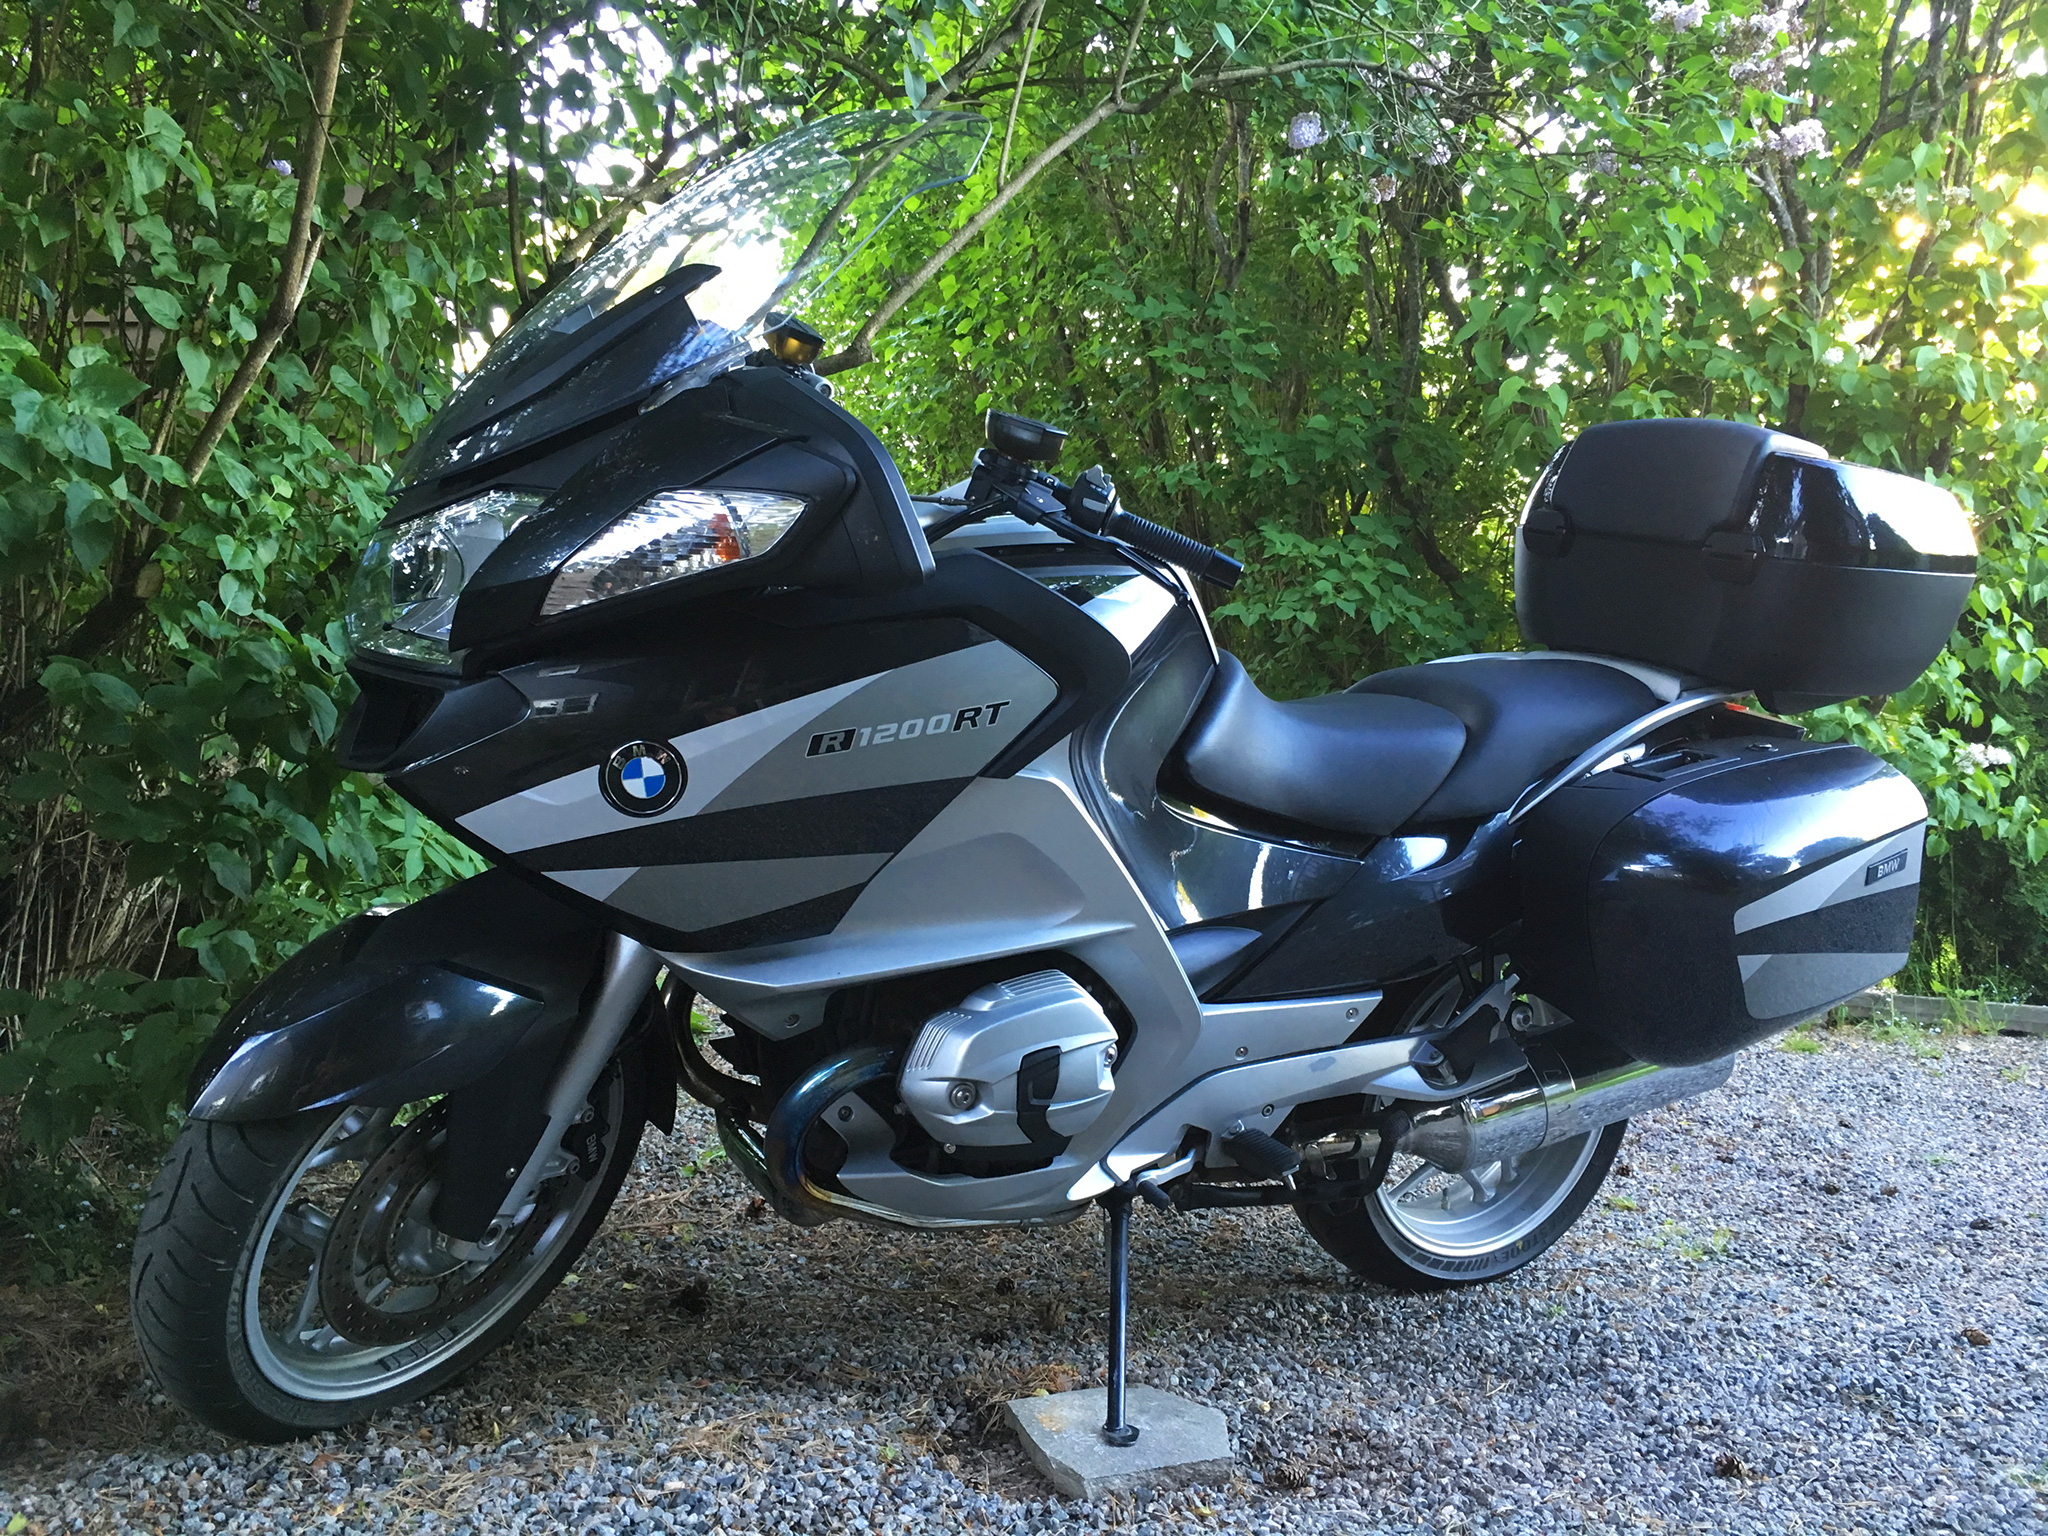 BMW R1200RT, definitely one of the better tourers money can buy